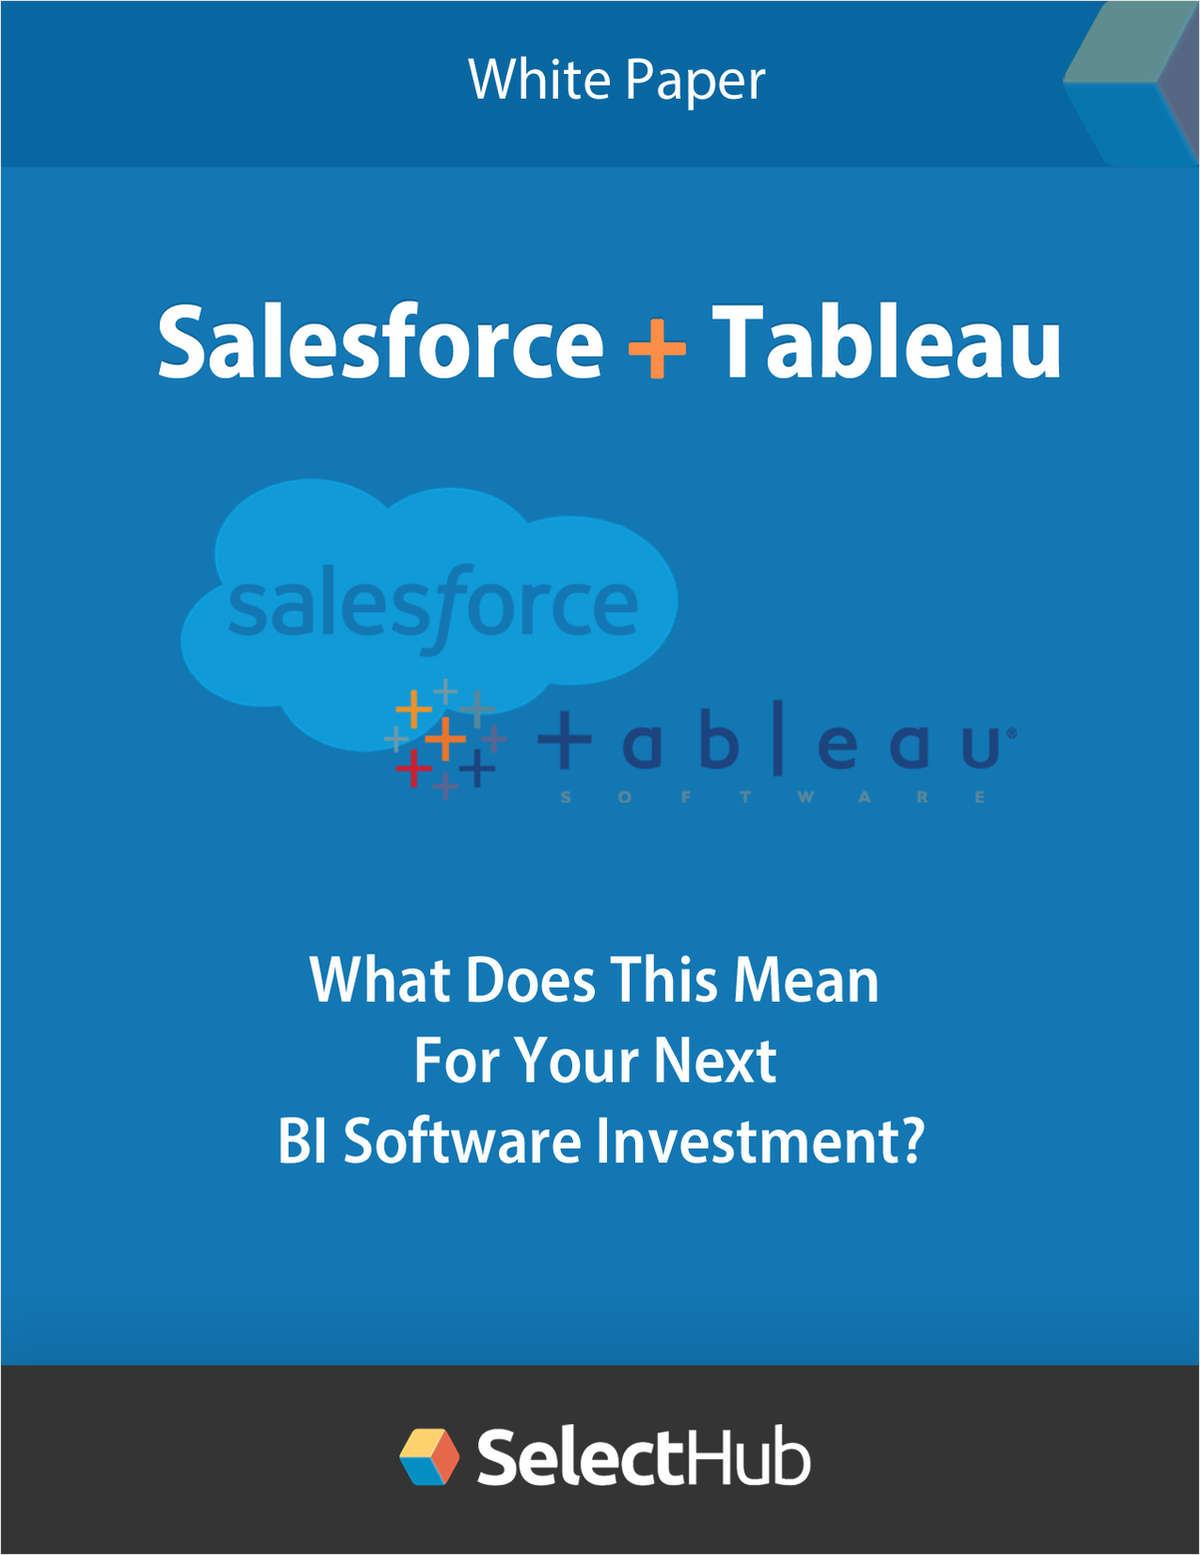 Salesforce Acquires Tableau: What Does This Mean for Your Next BI Software Investment?